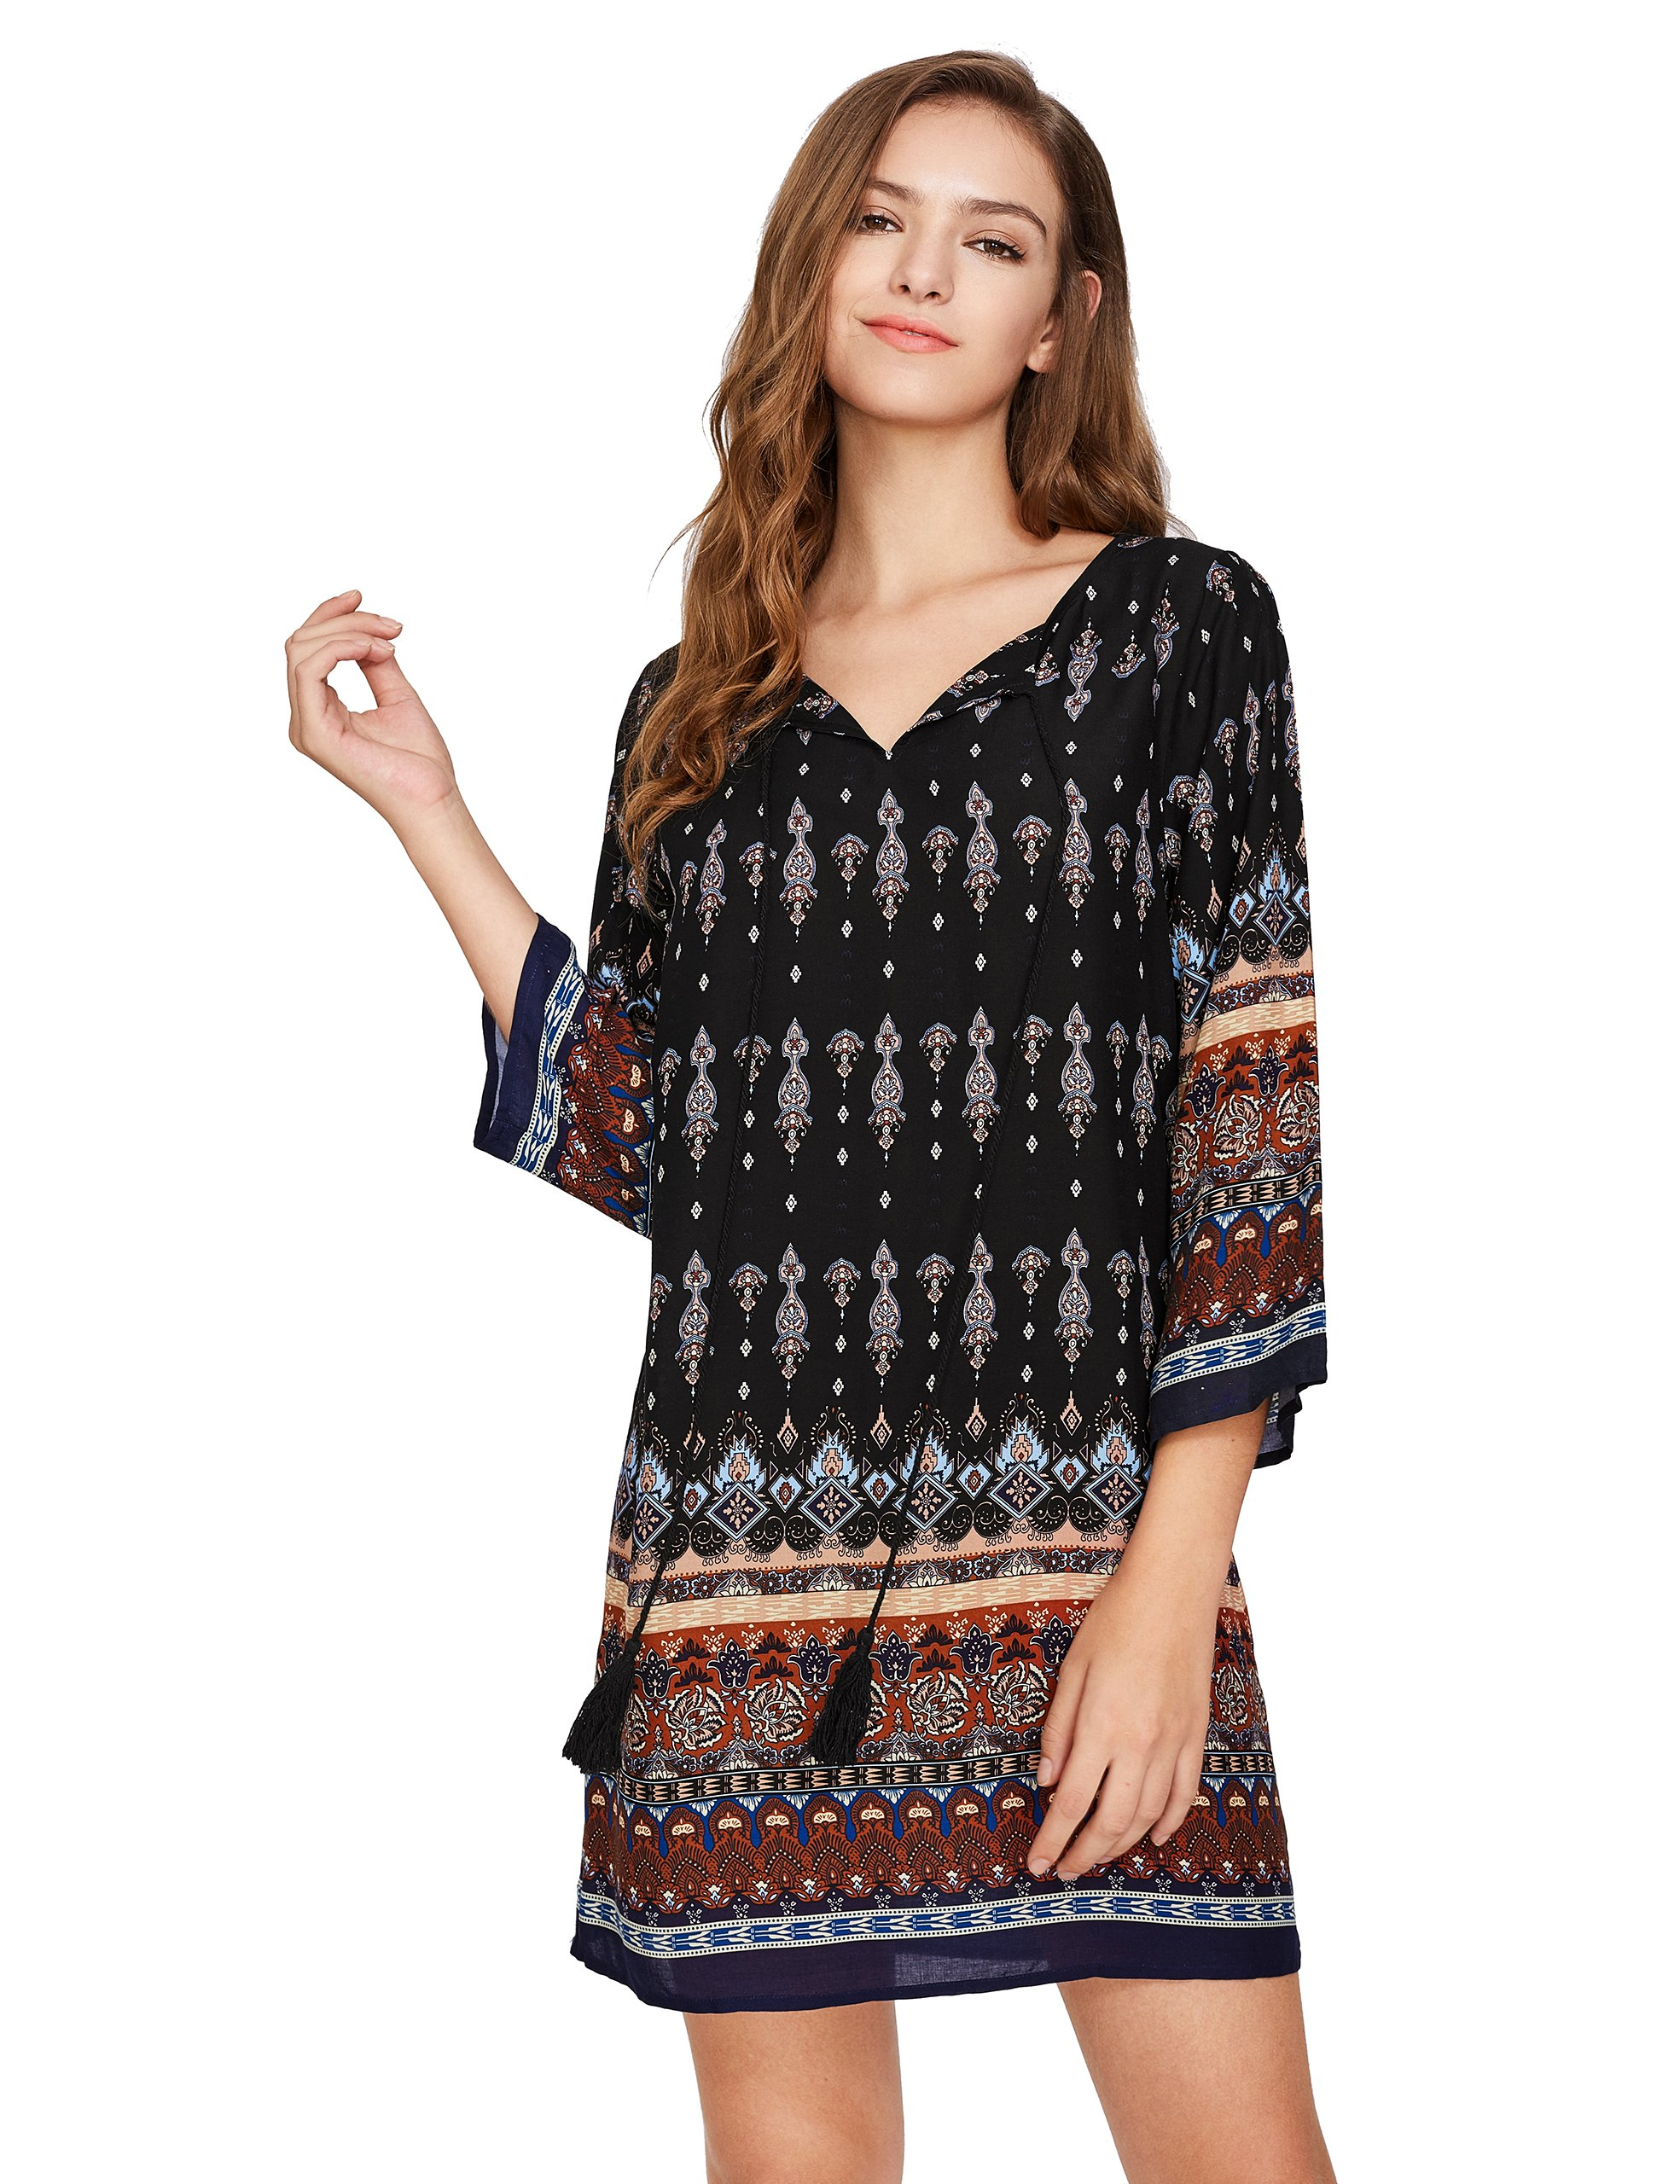 ROMWE Women's Boho Bohemian Tribal Print Summer Beach Dress Black XL